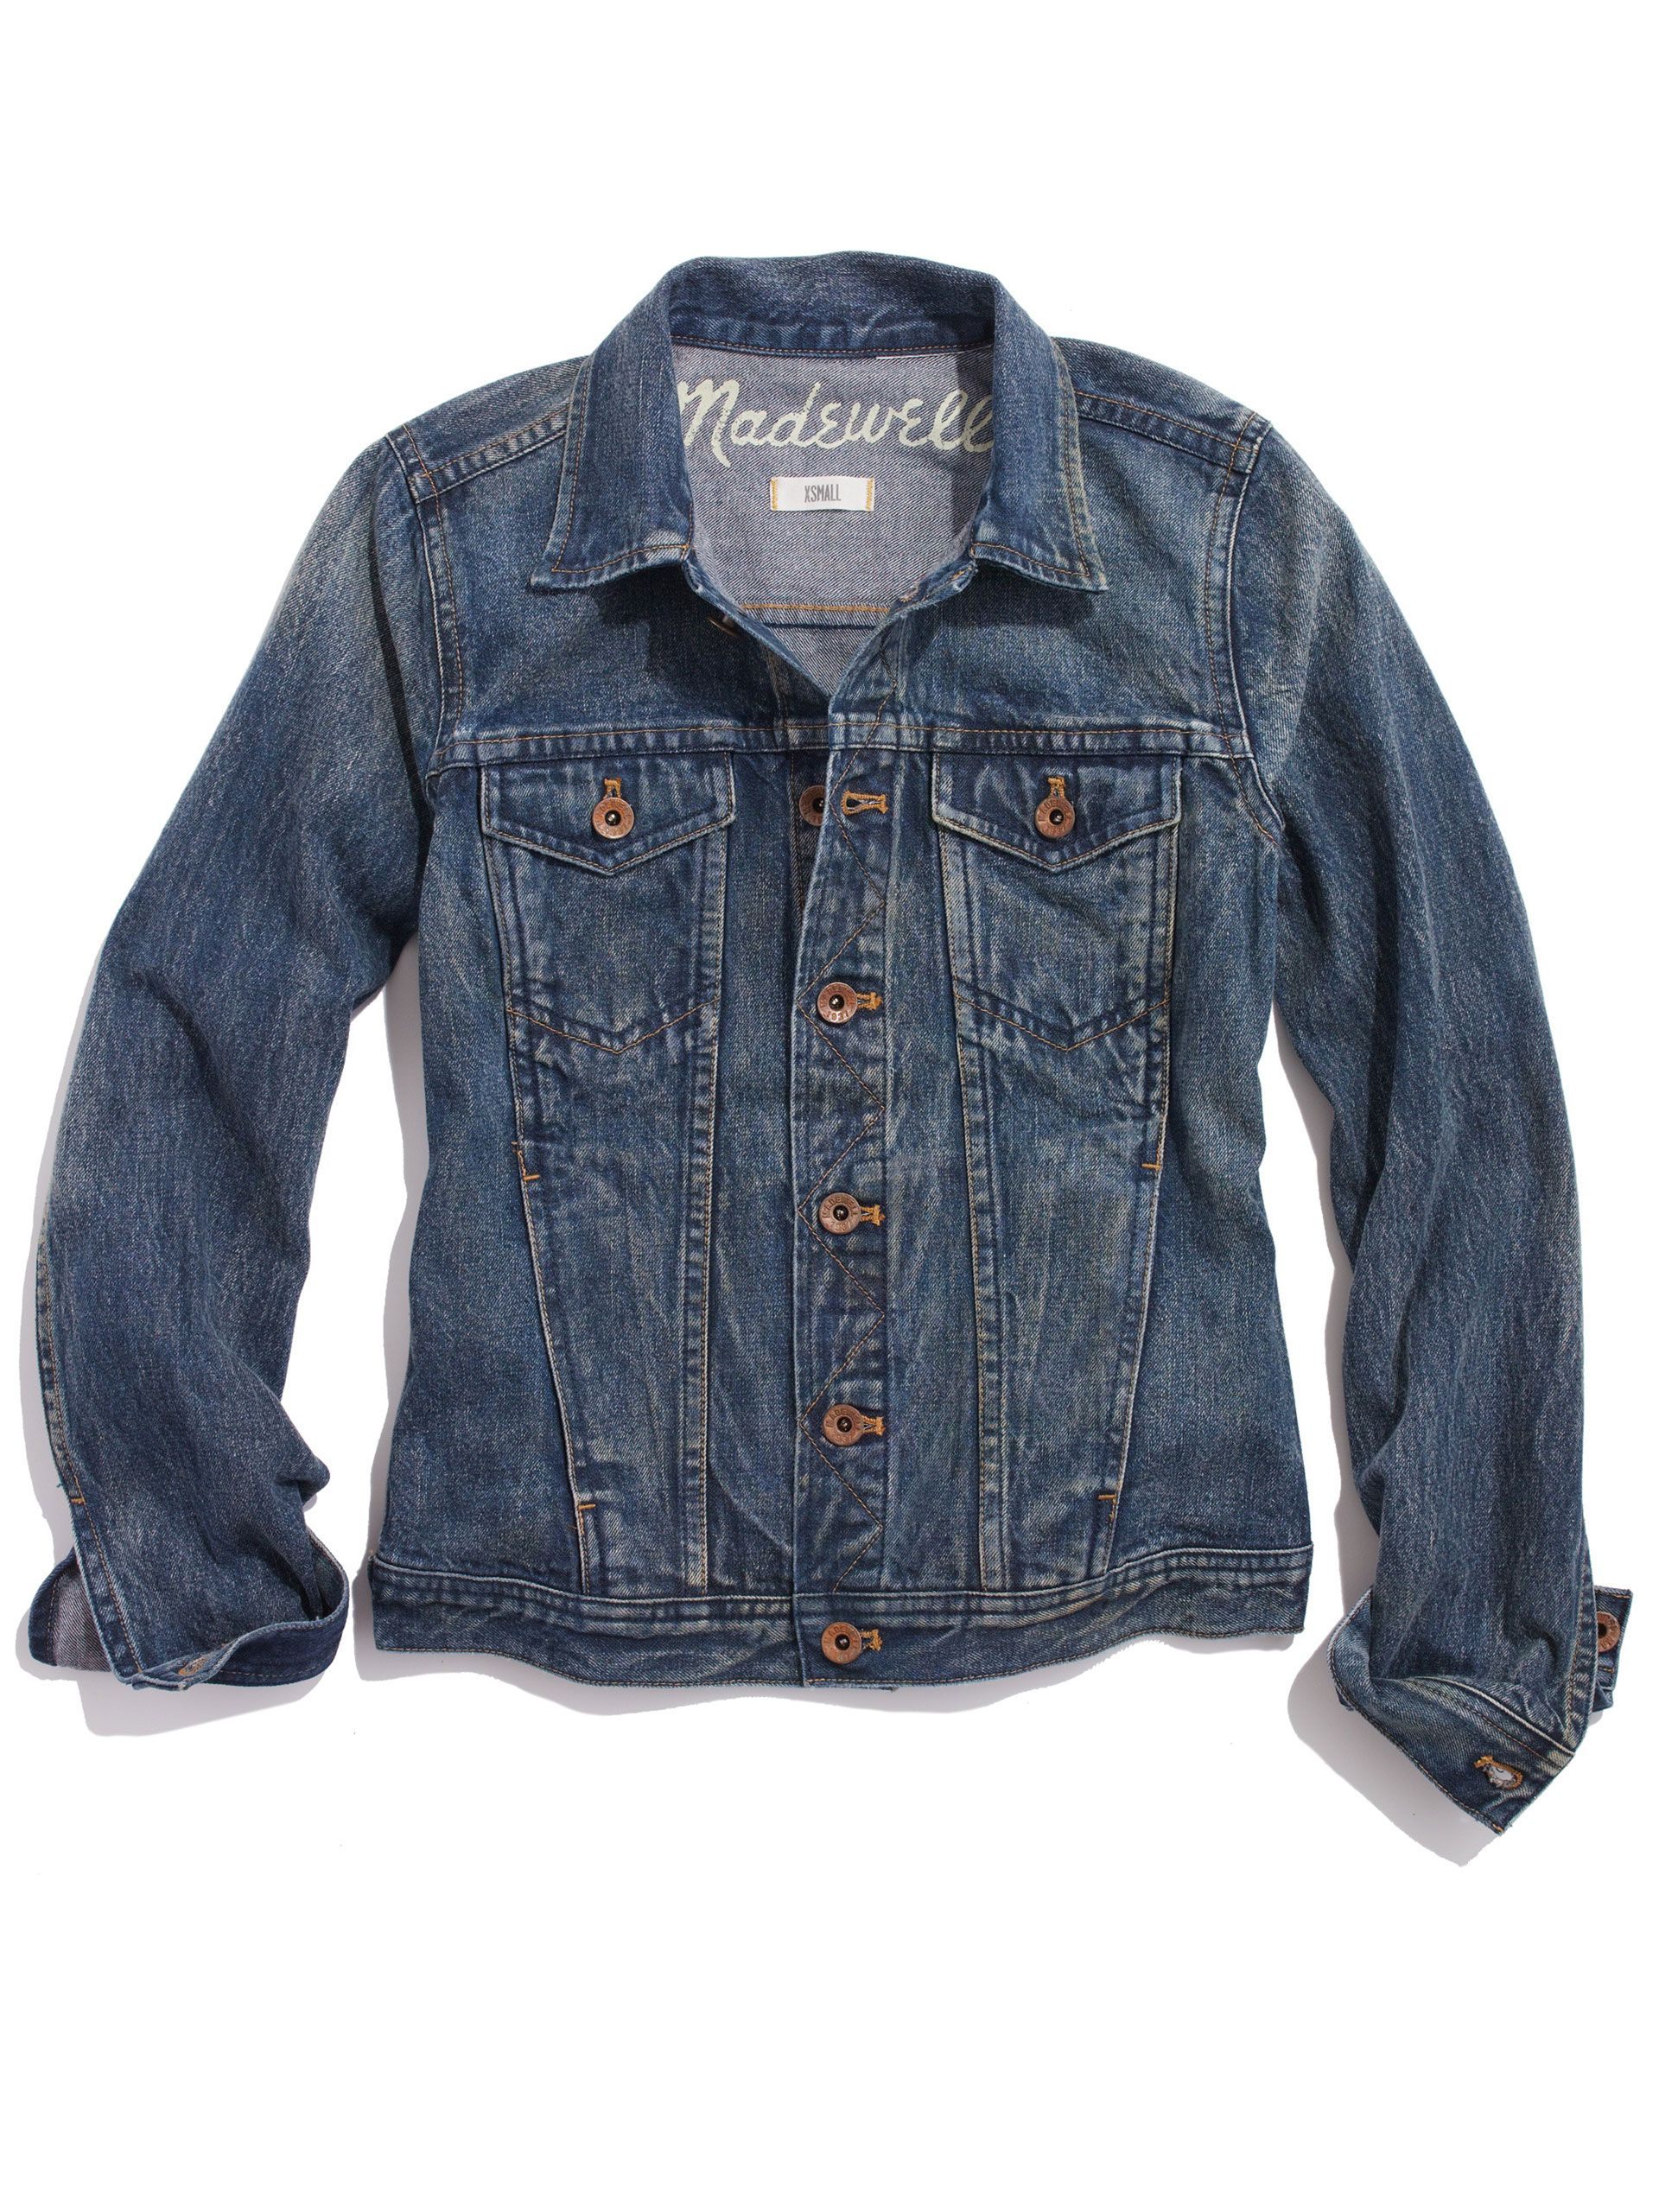 How to Find the Best Jean Jacket for Your Body | Pinterest ...